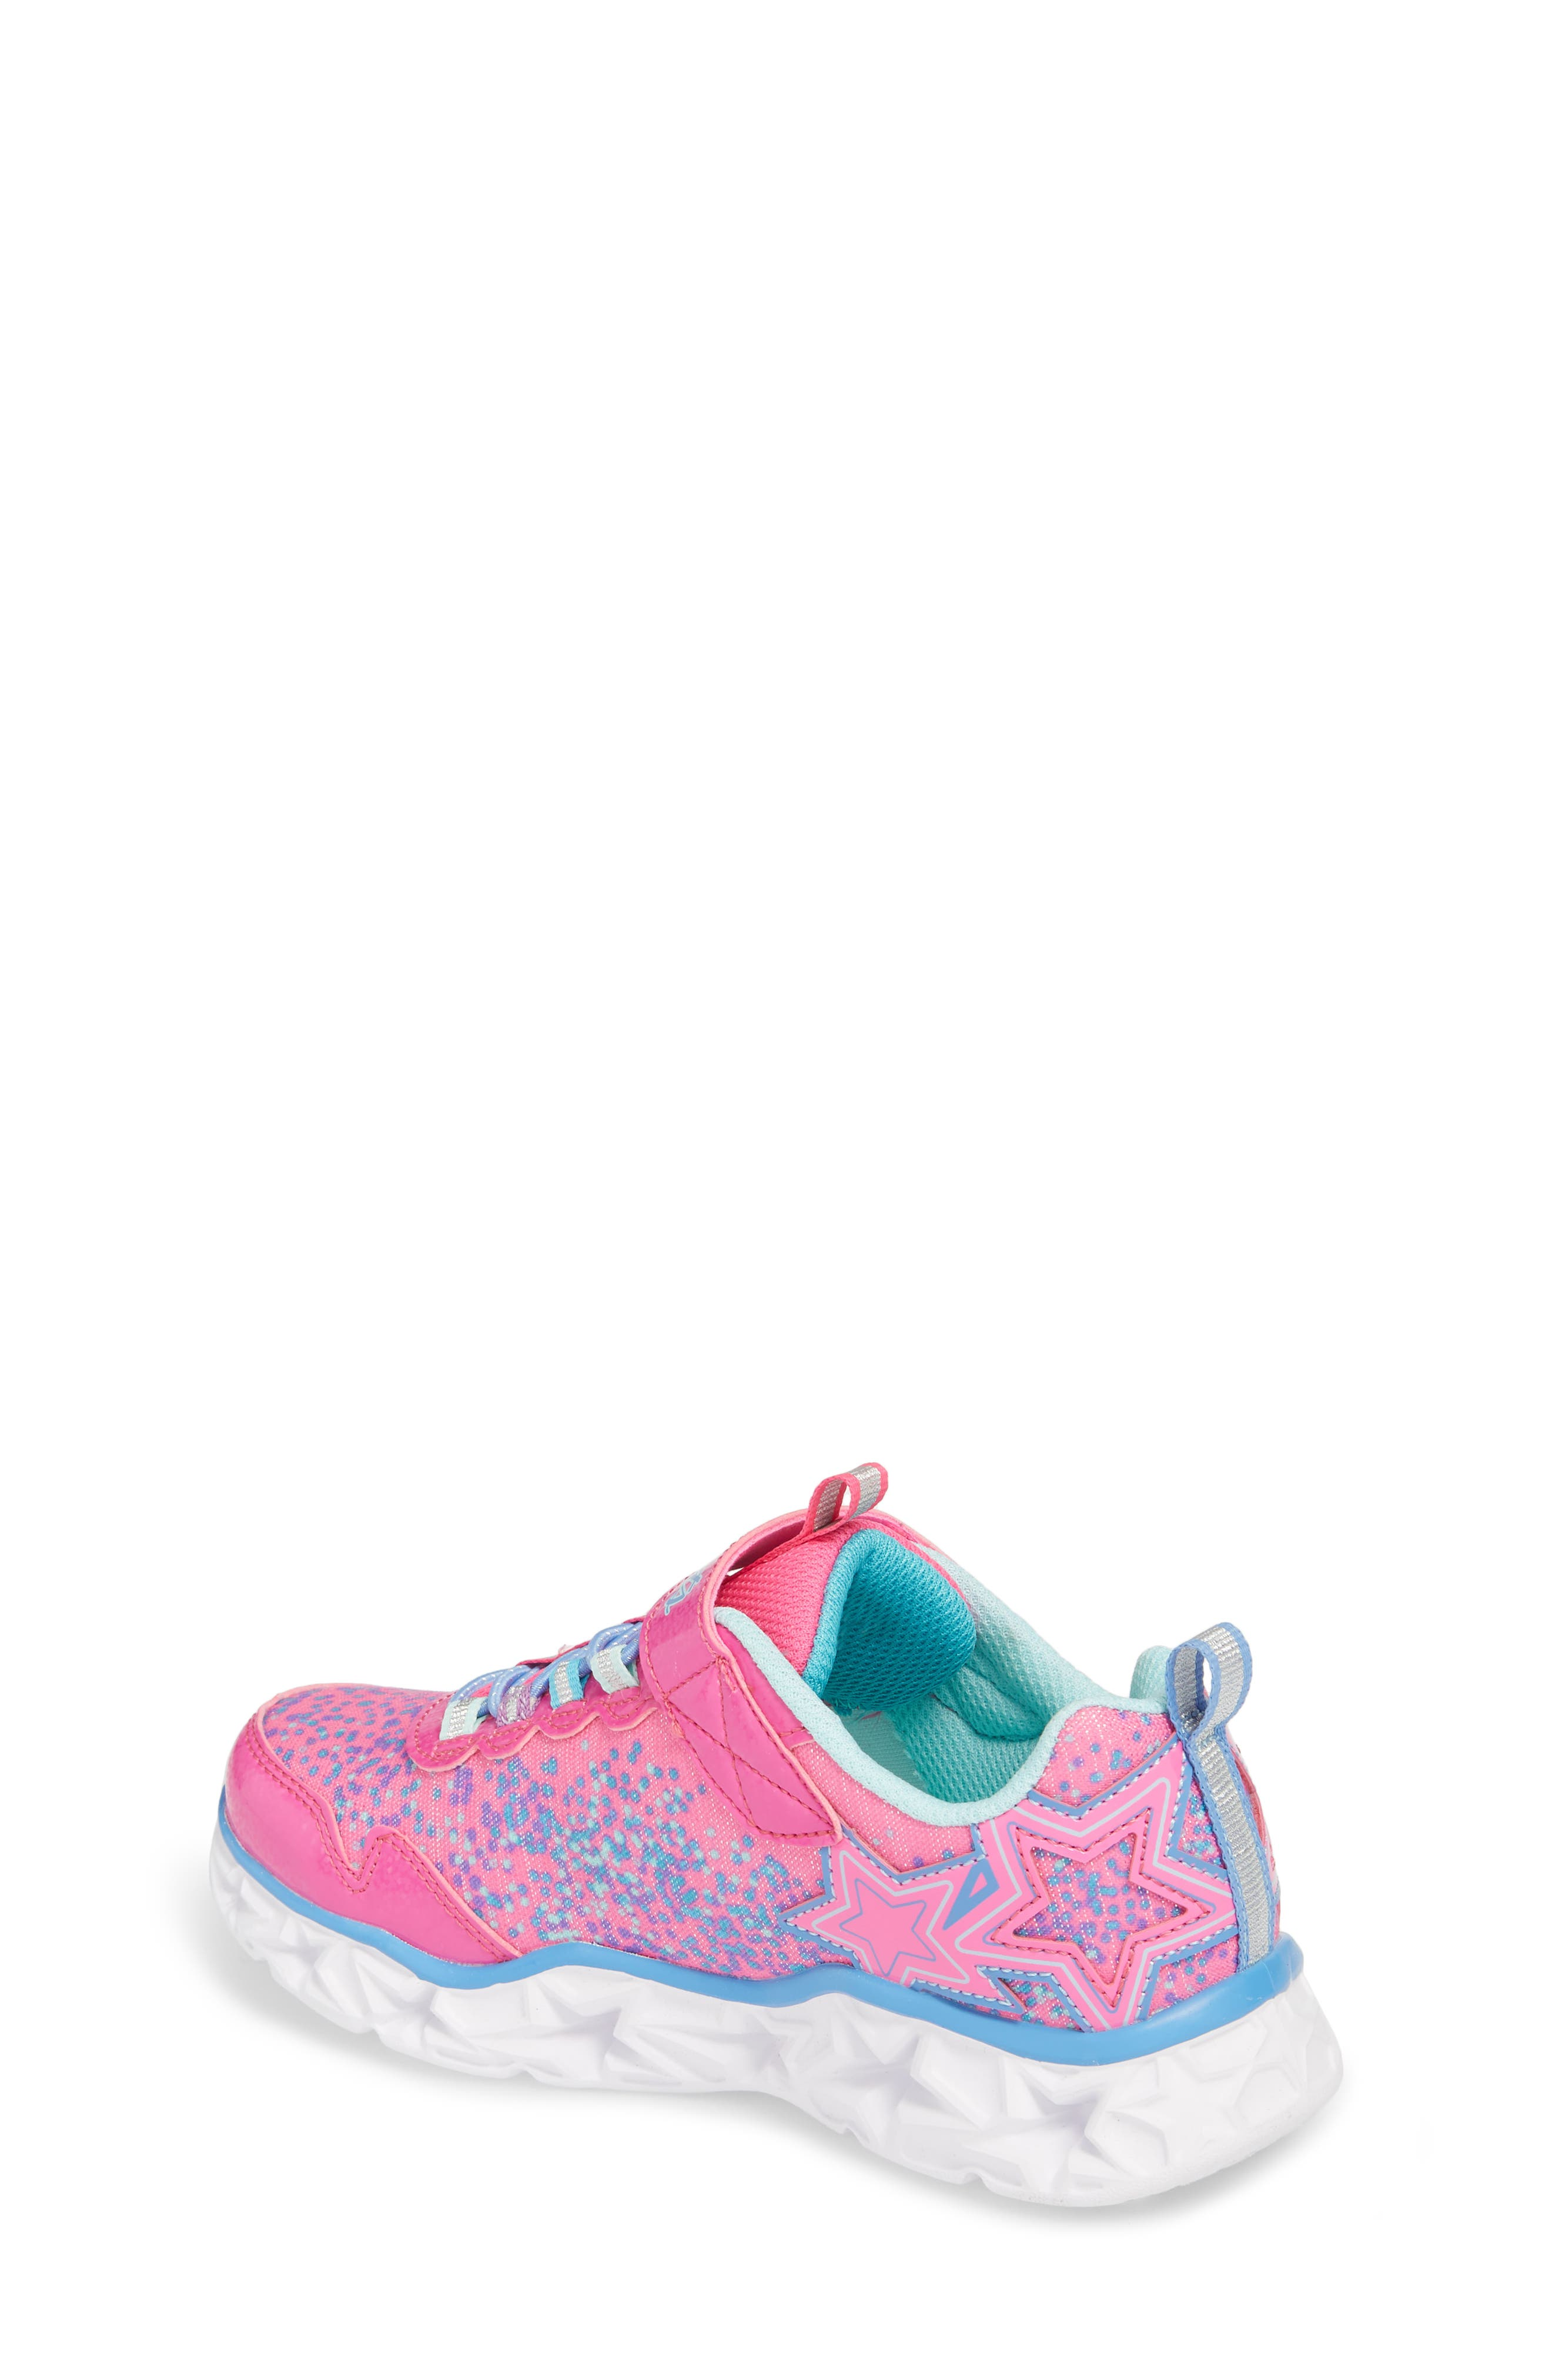 Galaxy Lights Sneakers,                             Alternate thumbnail 2, color,                             Neon Pink/ Multi